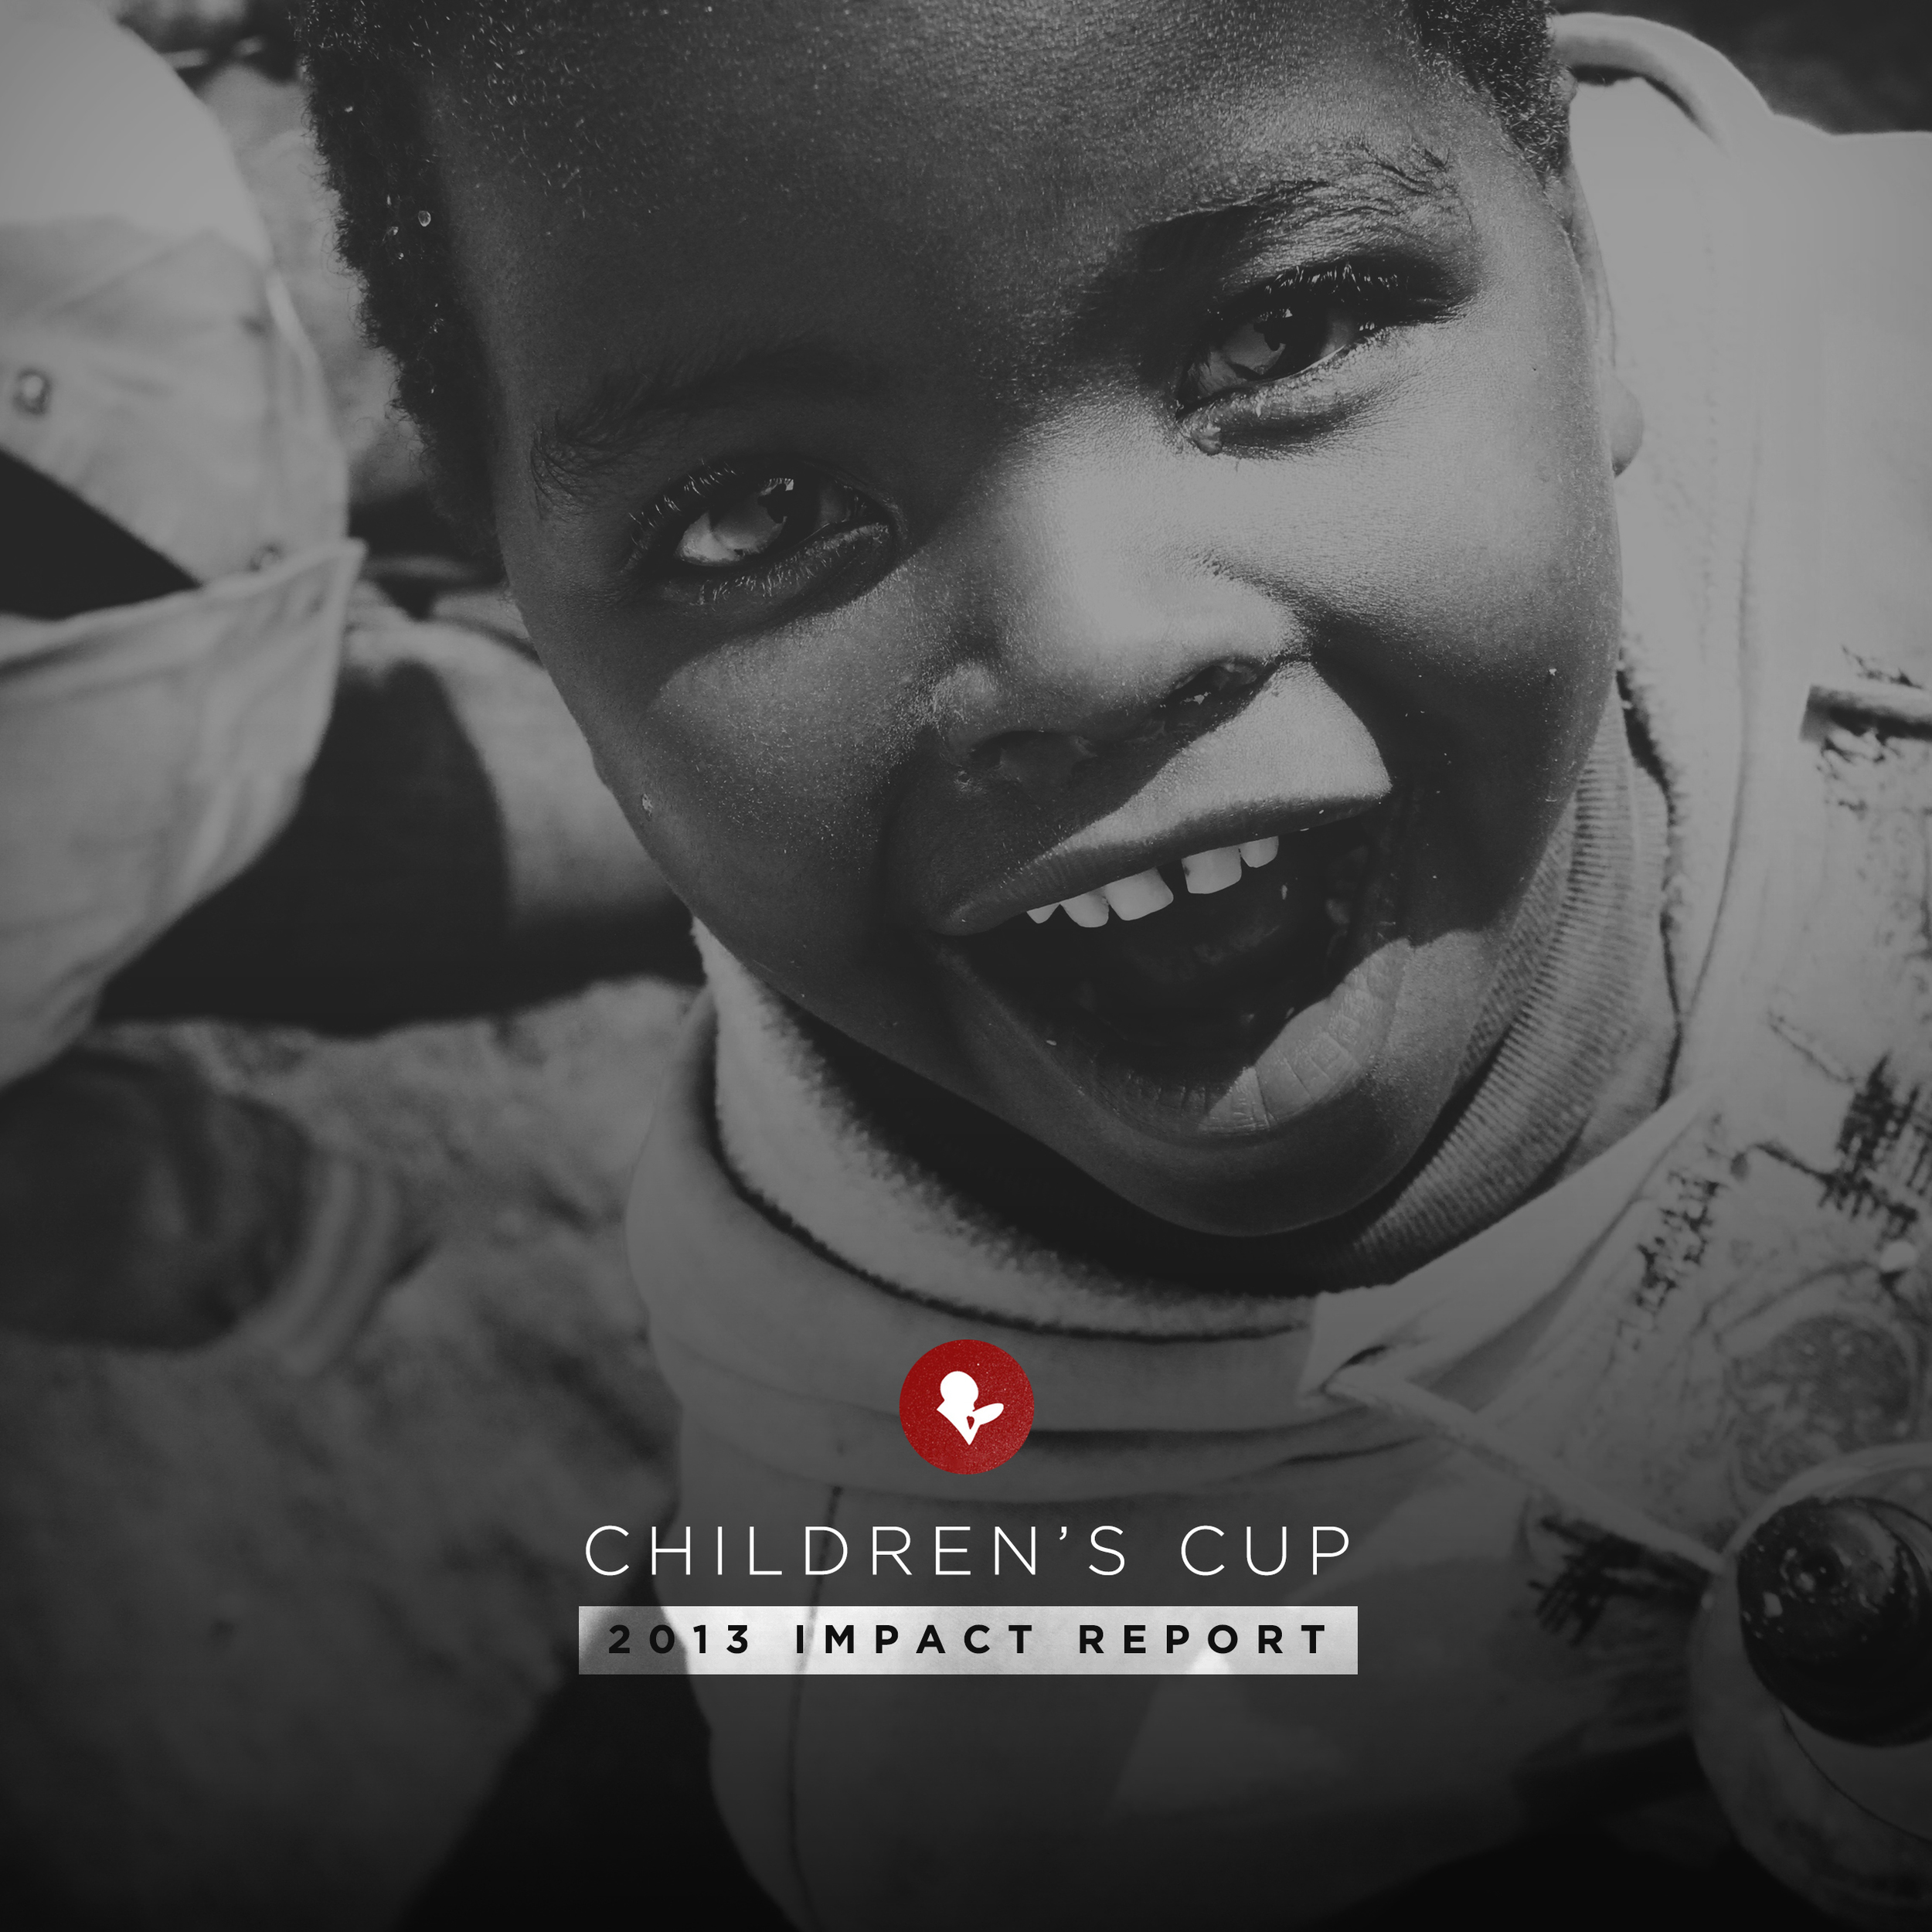 Children's+Cup+2013+Report+-+Dark+Cover_Page_01_Image_0001.jpg